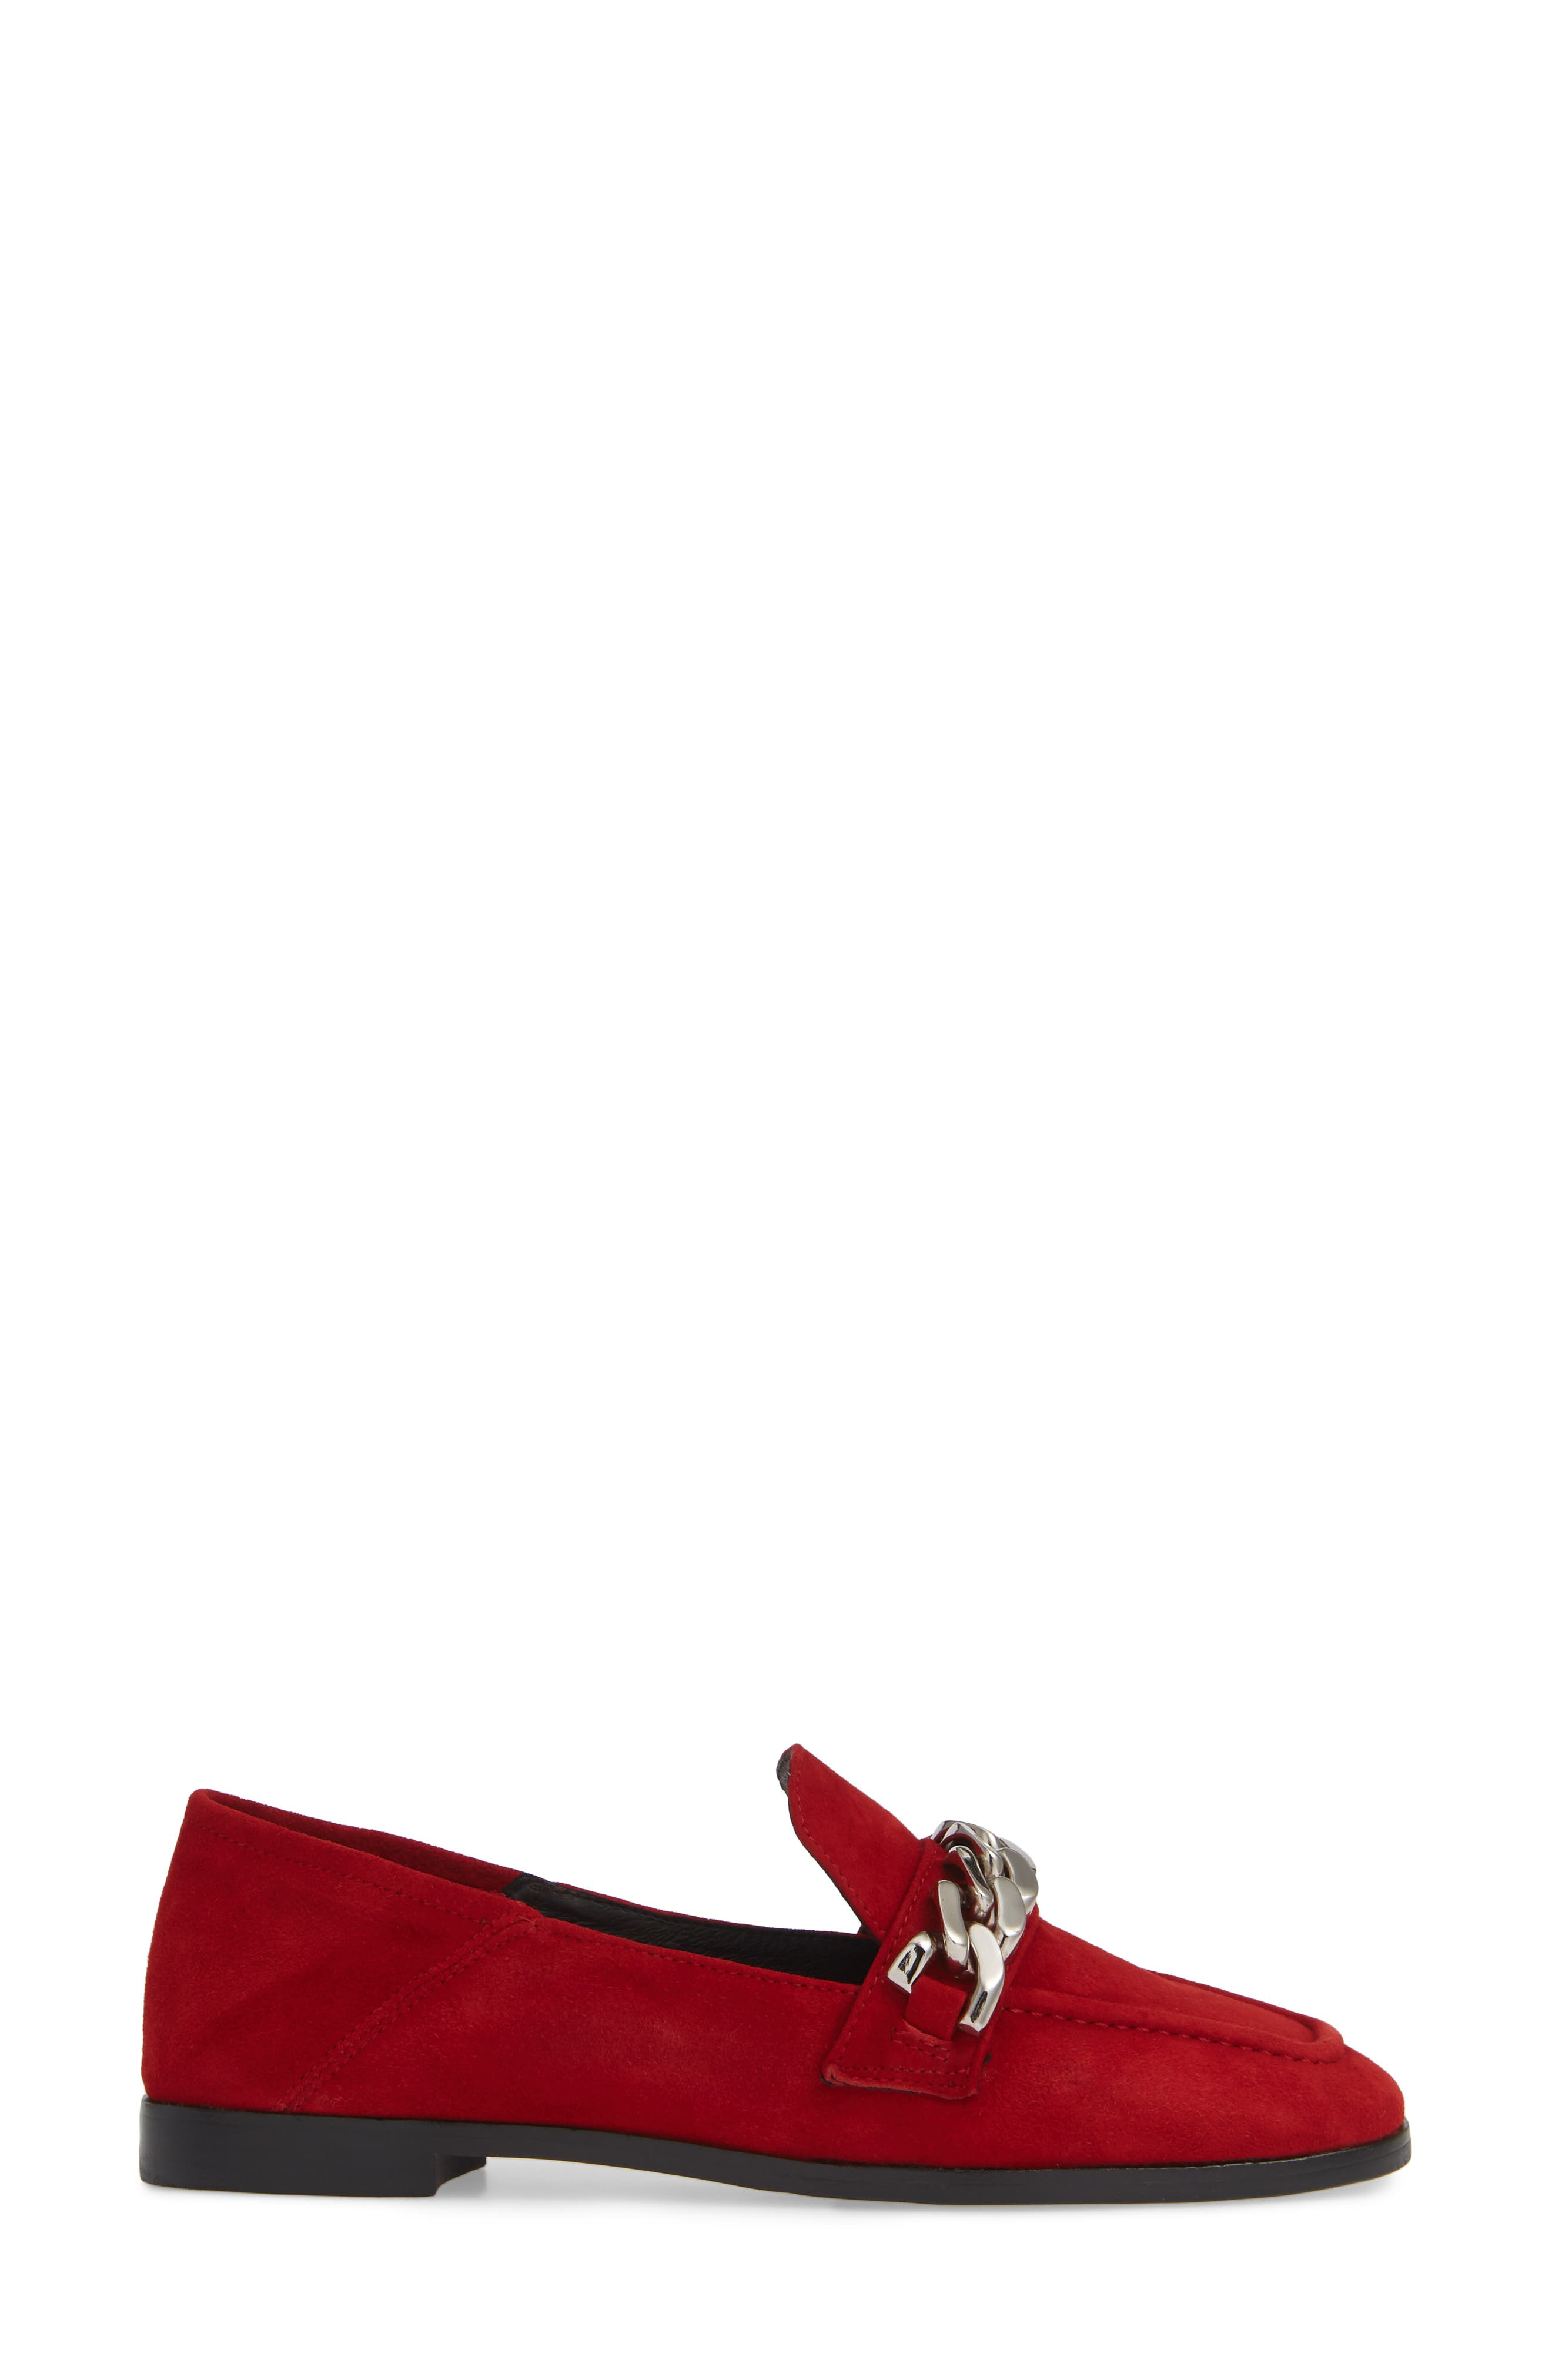 Jesse Convertible Heel Loafer,                             Alternate thumbnail 2, color,                             RED SUEDE SILVER